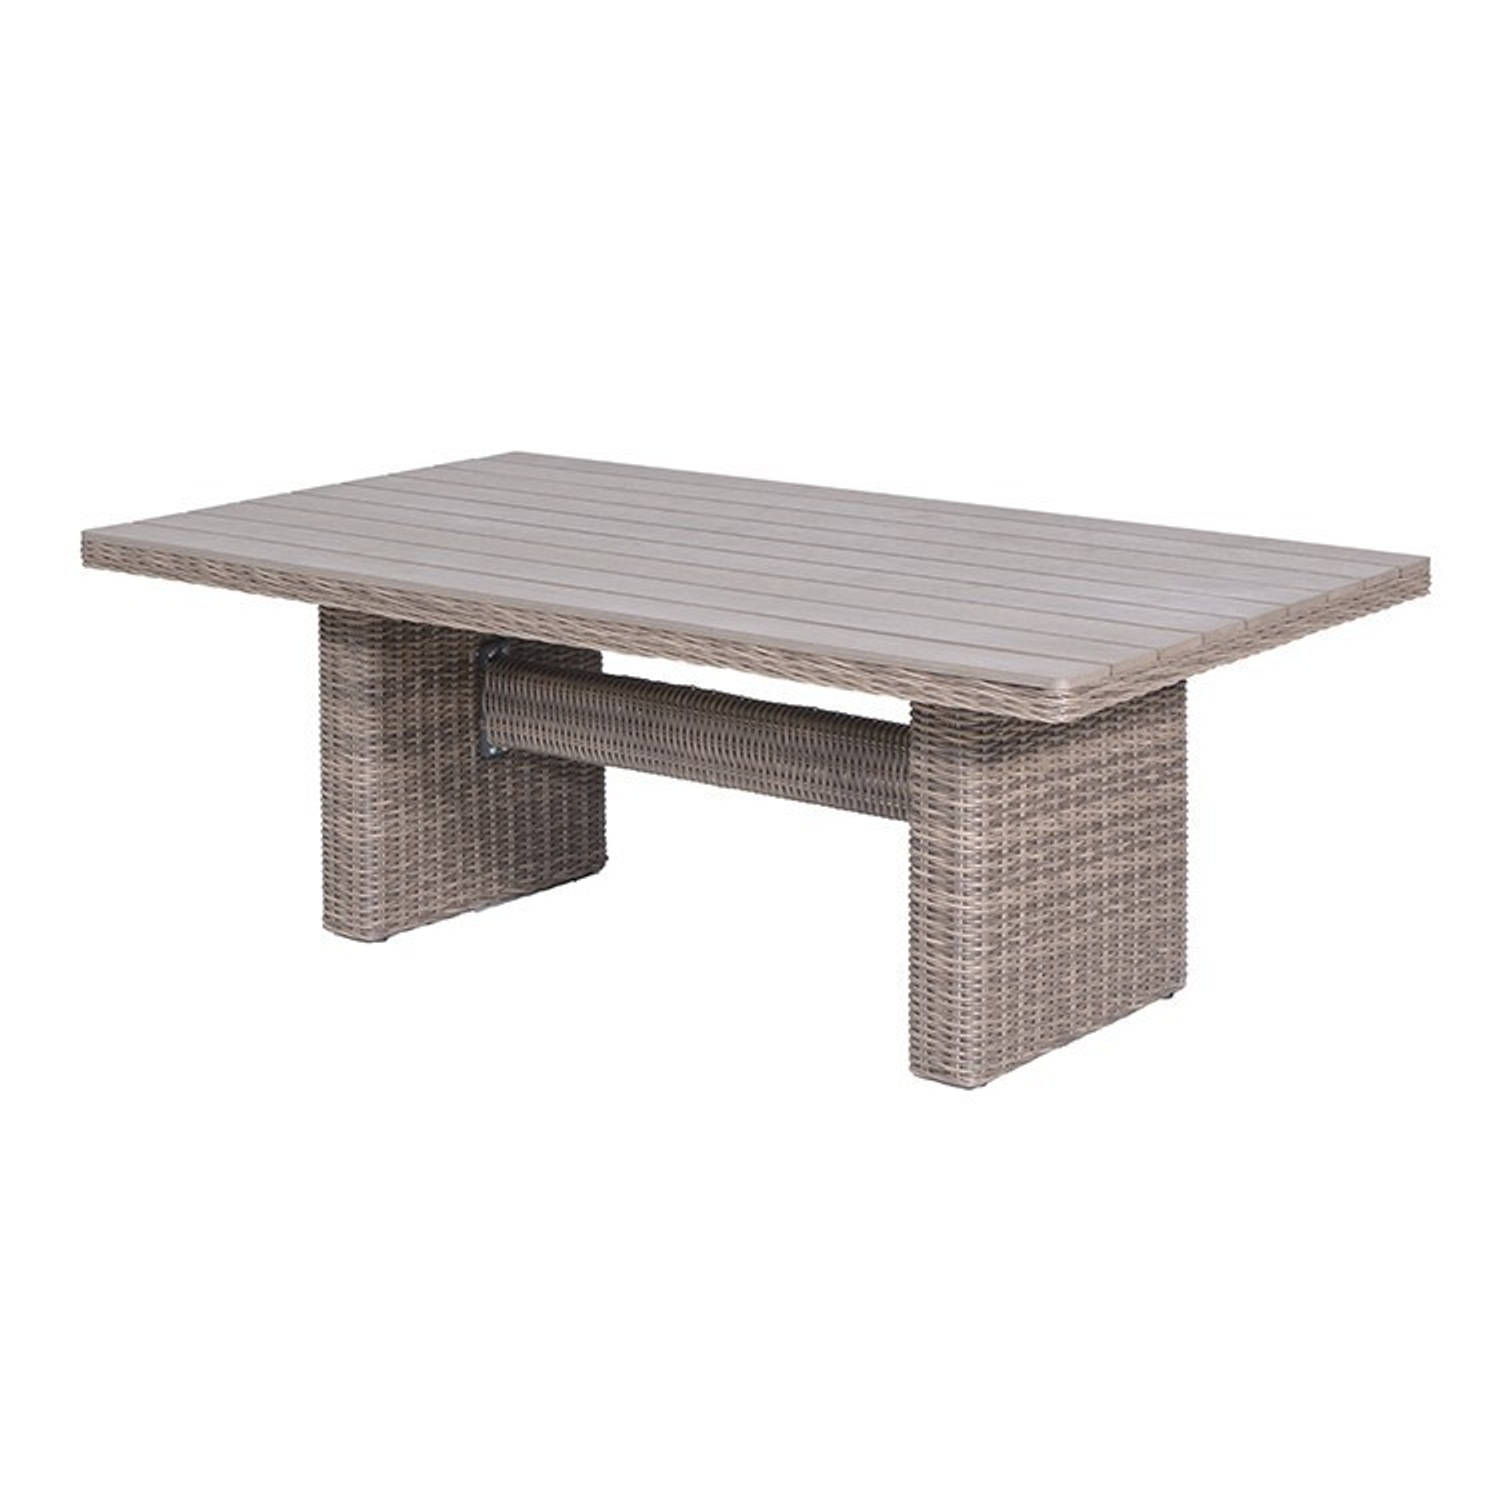 Garden Impressions Tennessee lounge dining tafel 180x100 cm wicker bruin